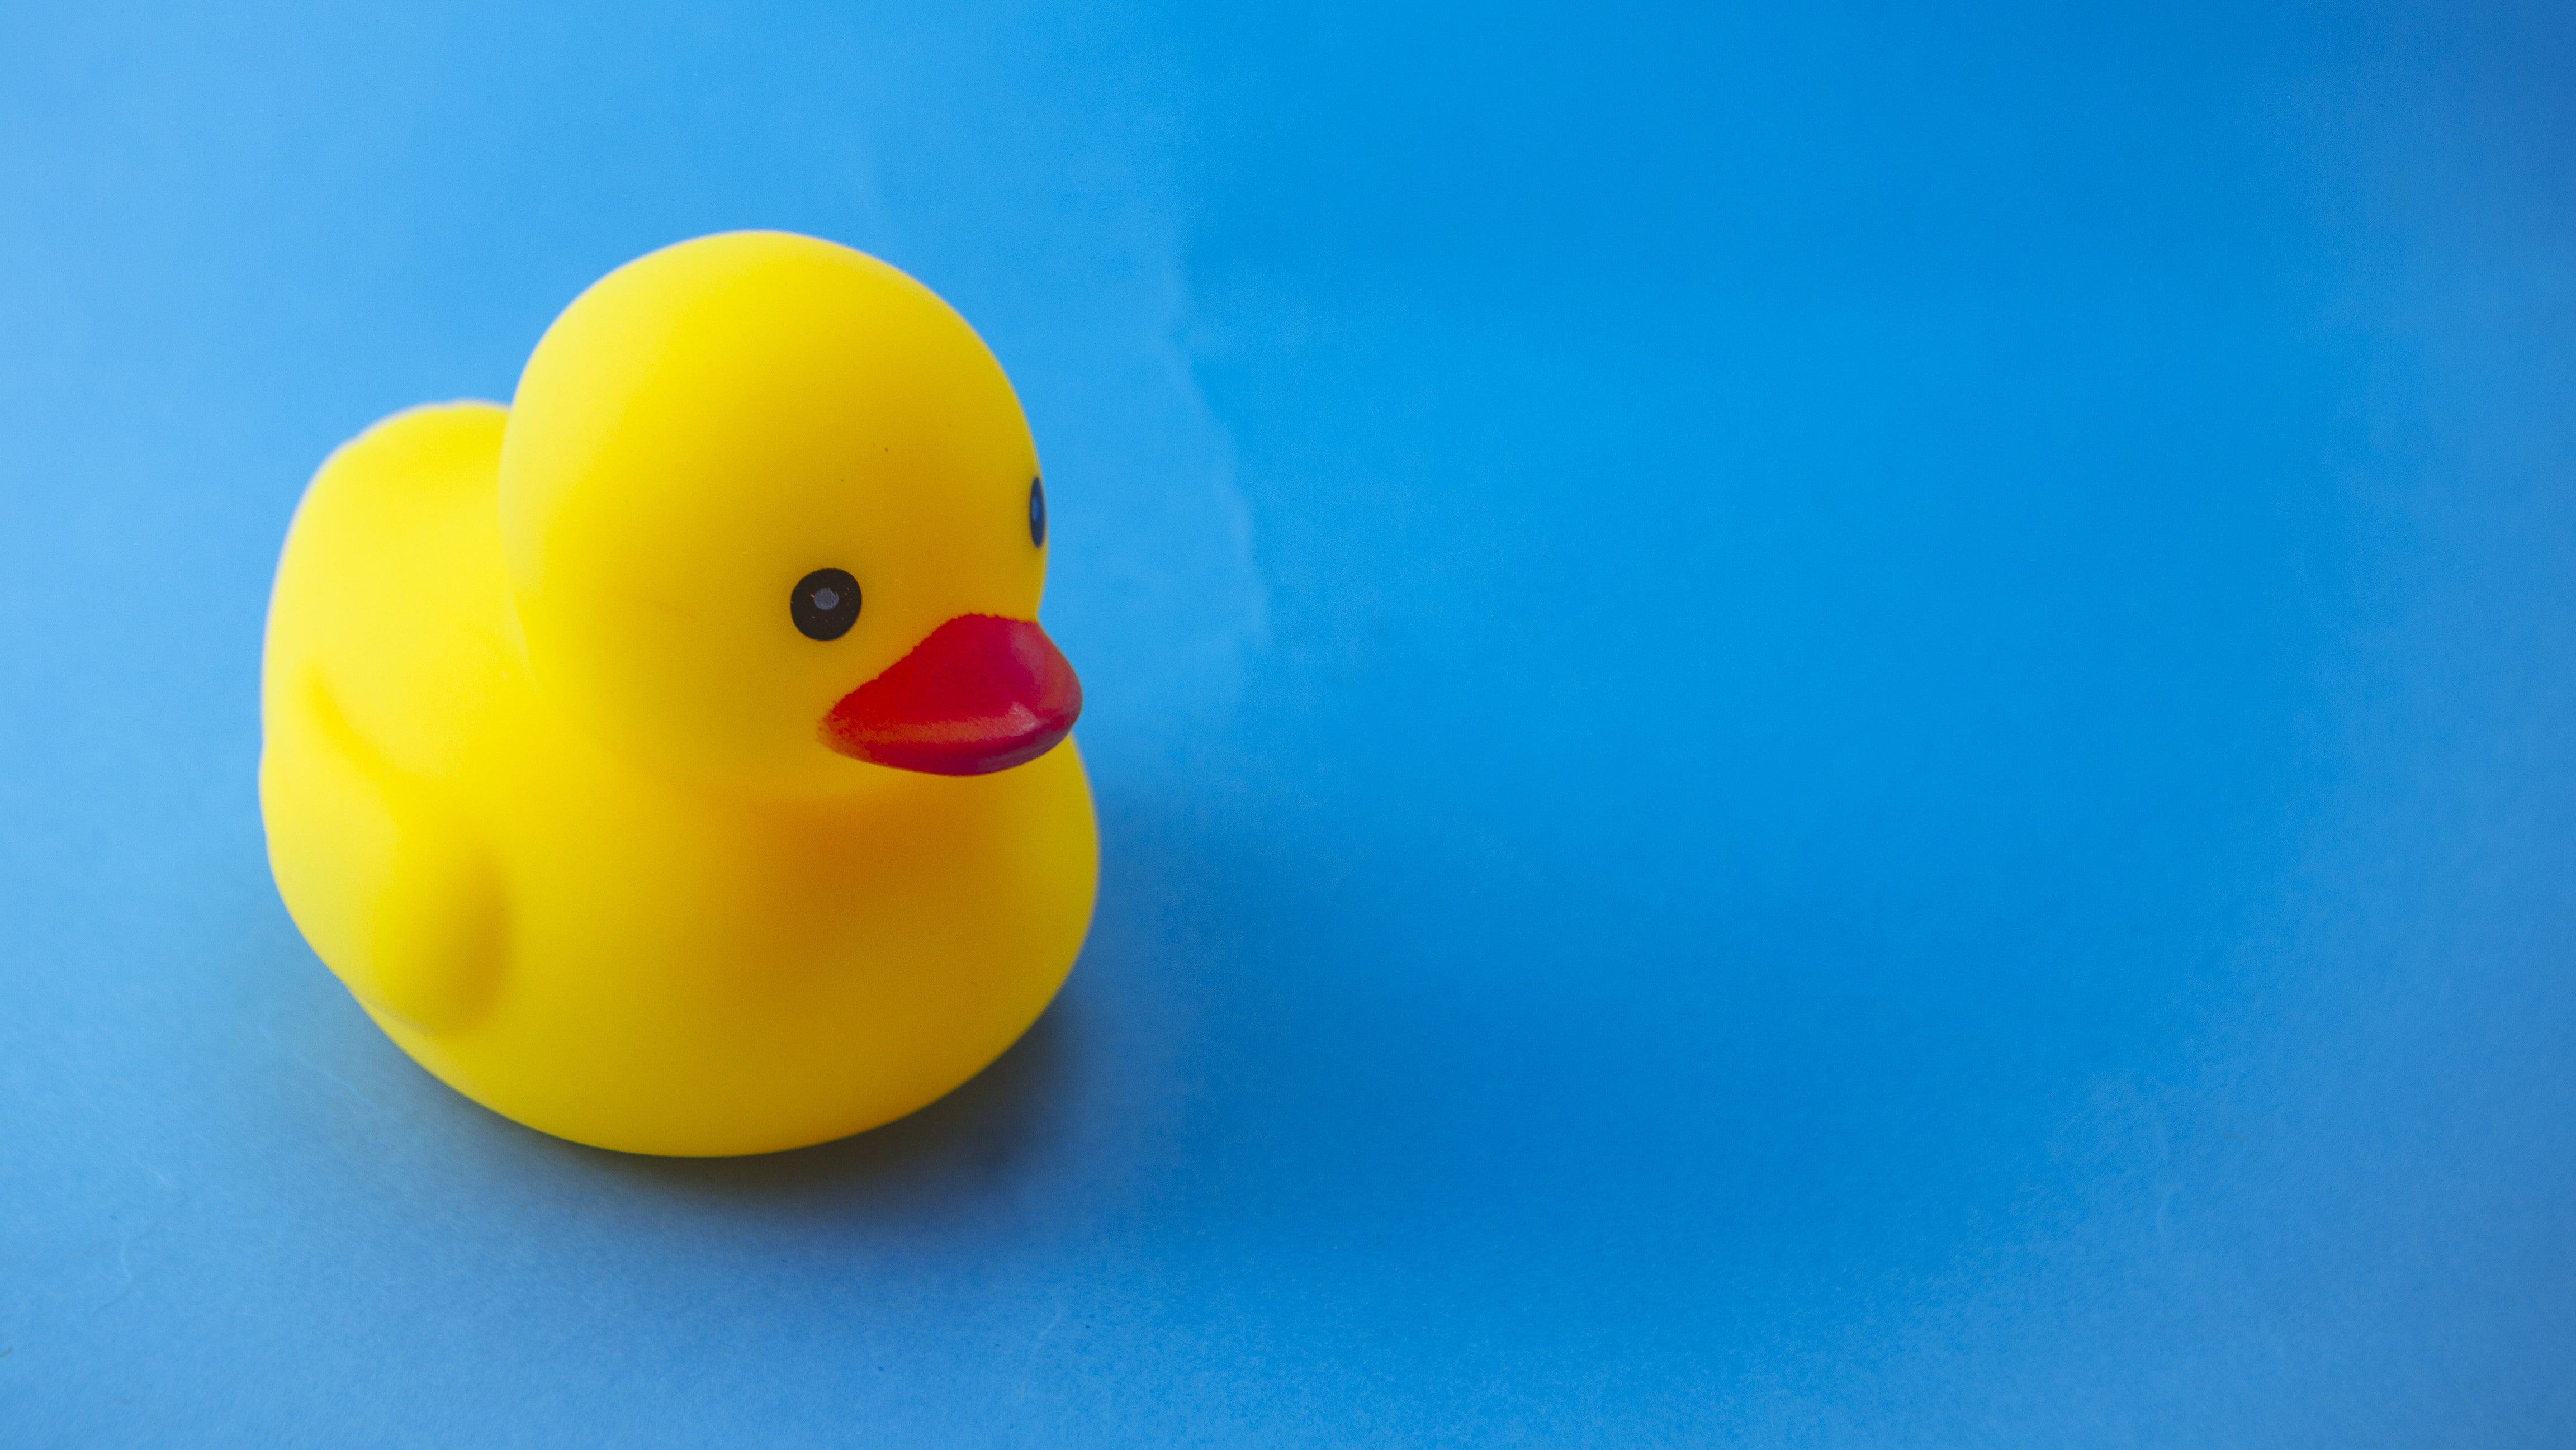 Solve Your Own Problems With The Rubber Duck Trick